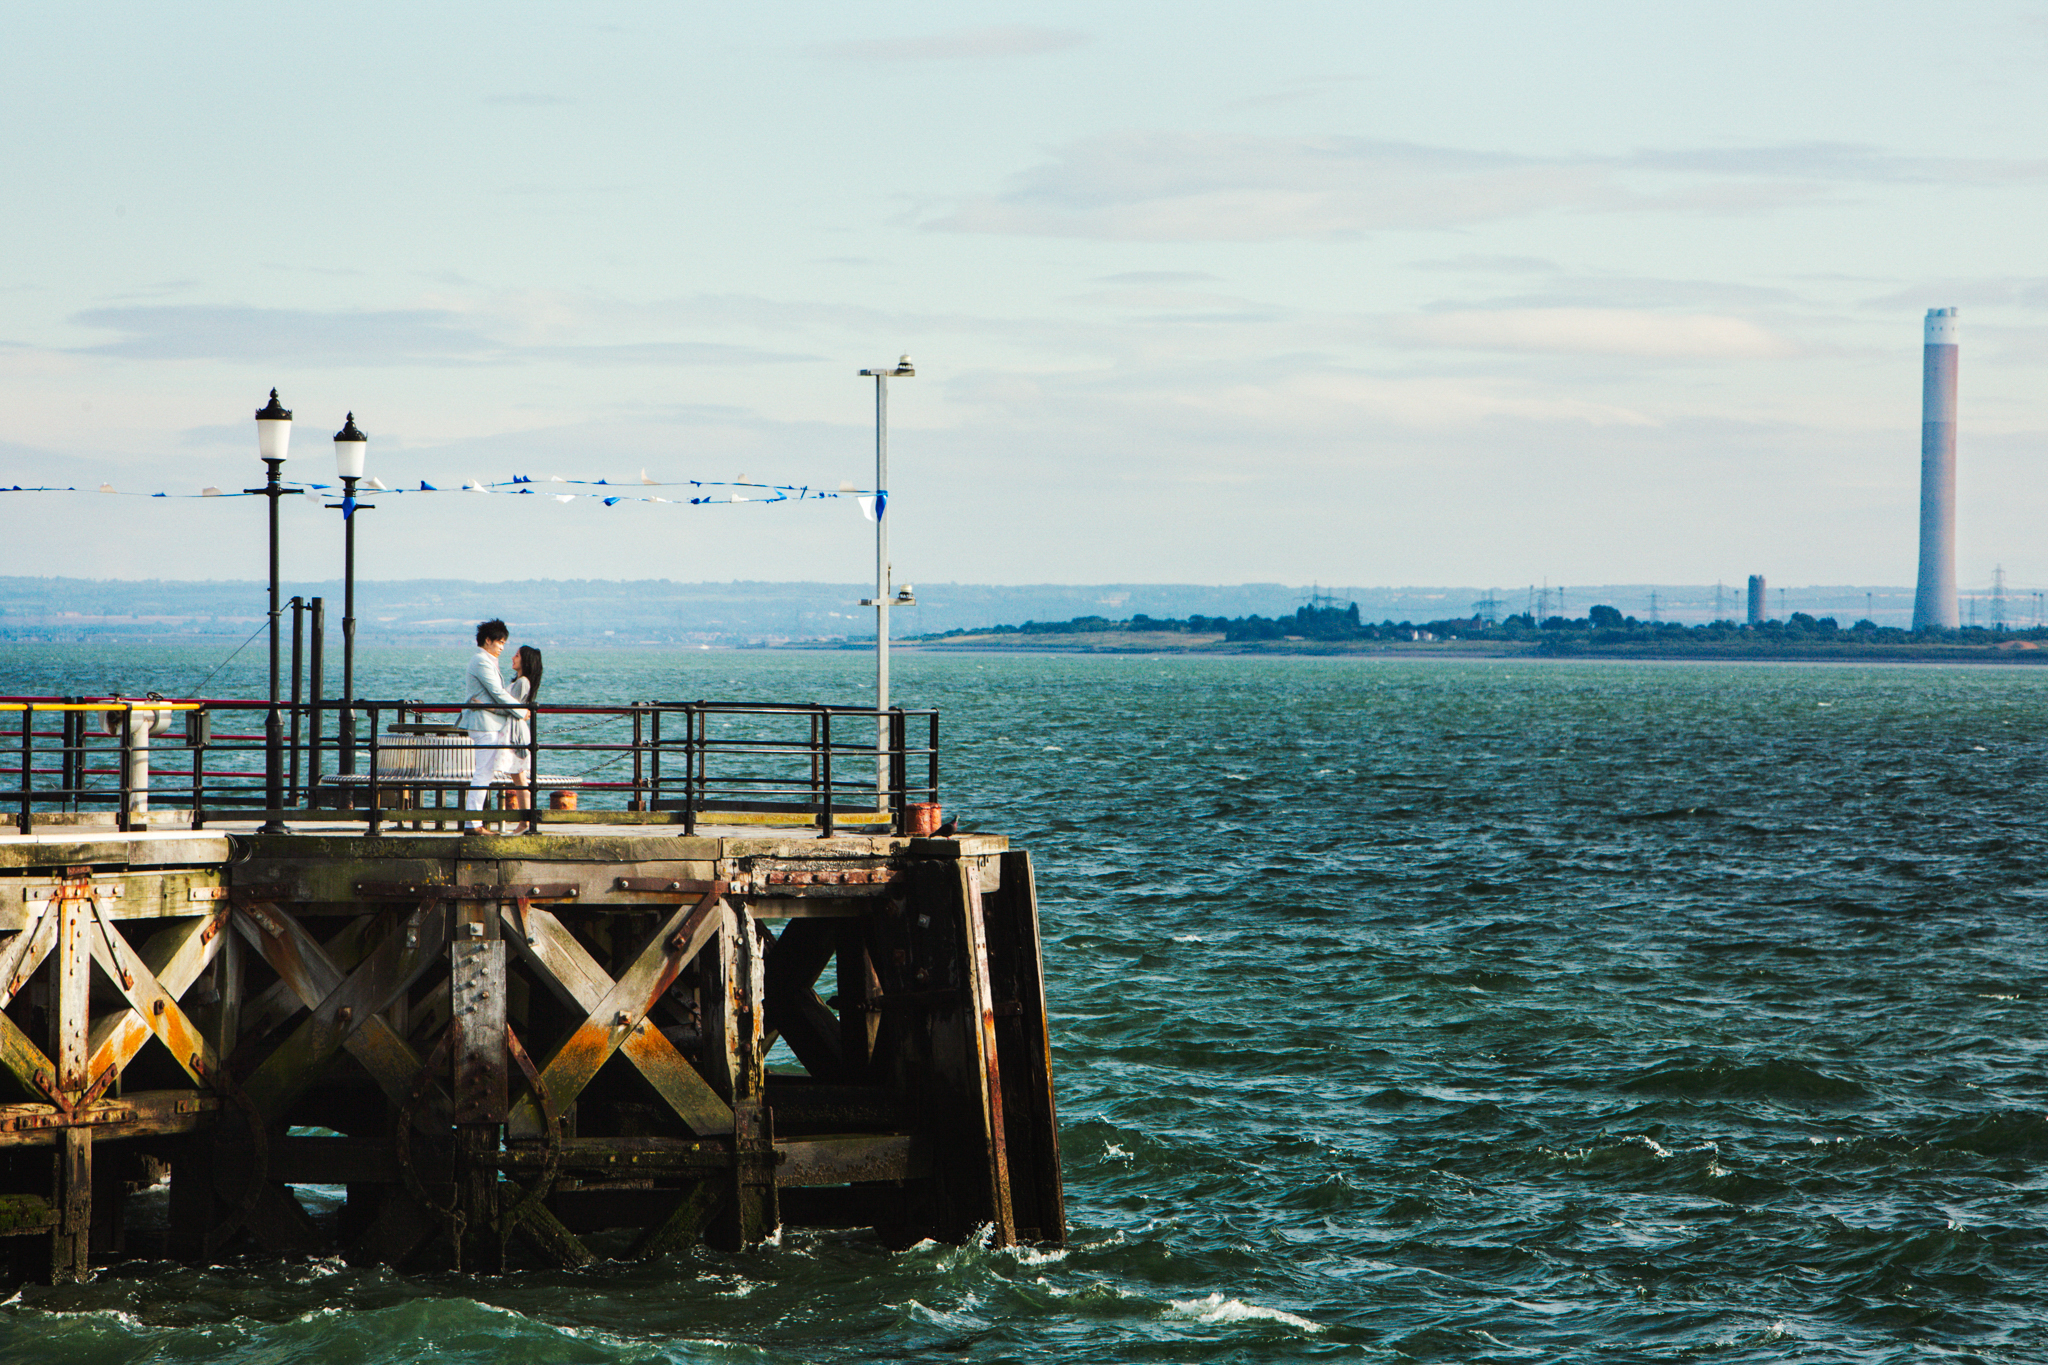 Southend on sea: Fiona and Alex Engagement photography